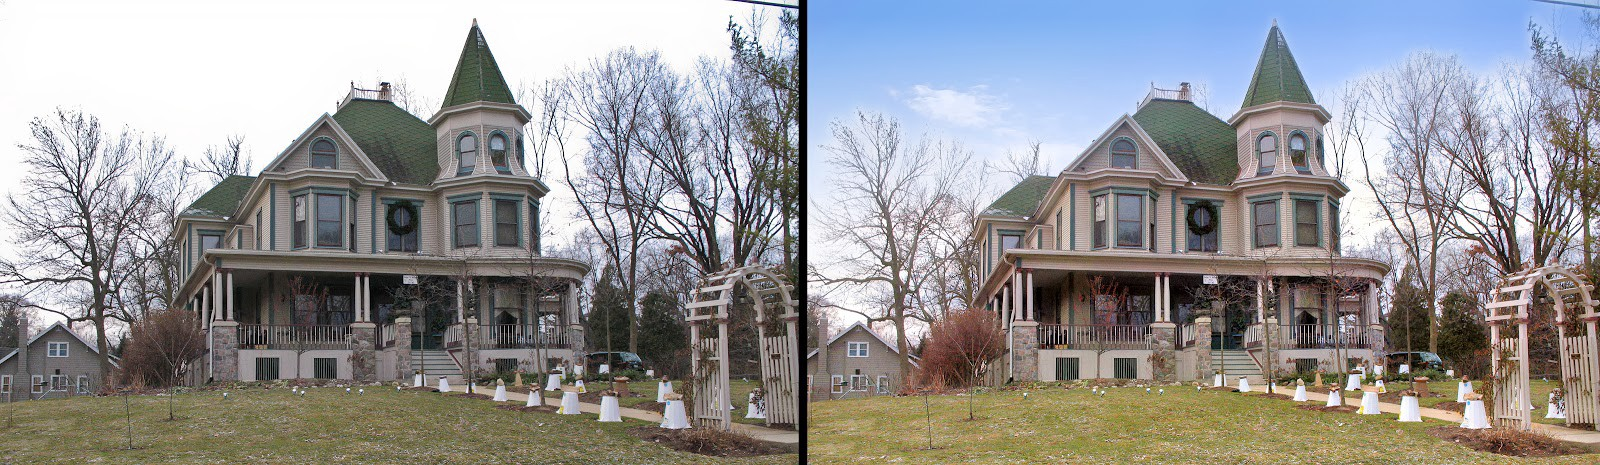 *If you think you've seen this B&B before, you're probably right. It features in the film *Groundhog Day*. By the way, two weeks ago the groundhog could see his shadow which means we are in for 6 more weeks of winter. [image enhanced by [Autoenhance.ai](http://autoenhance.ai)]*